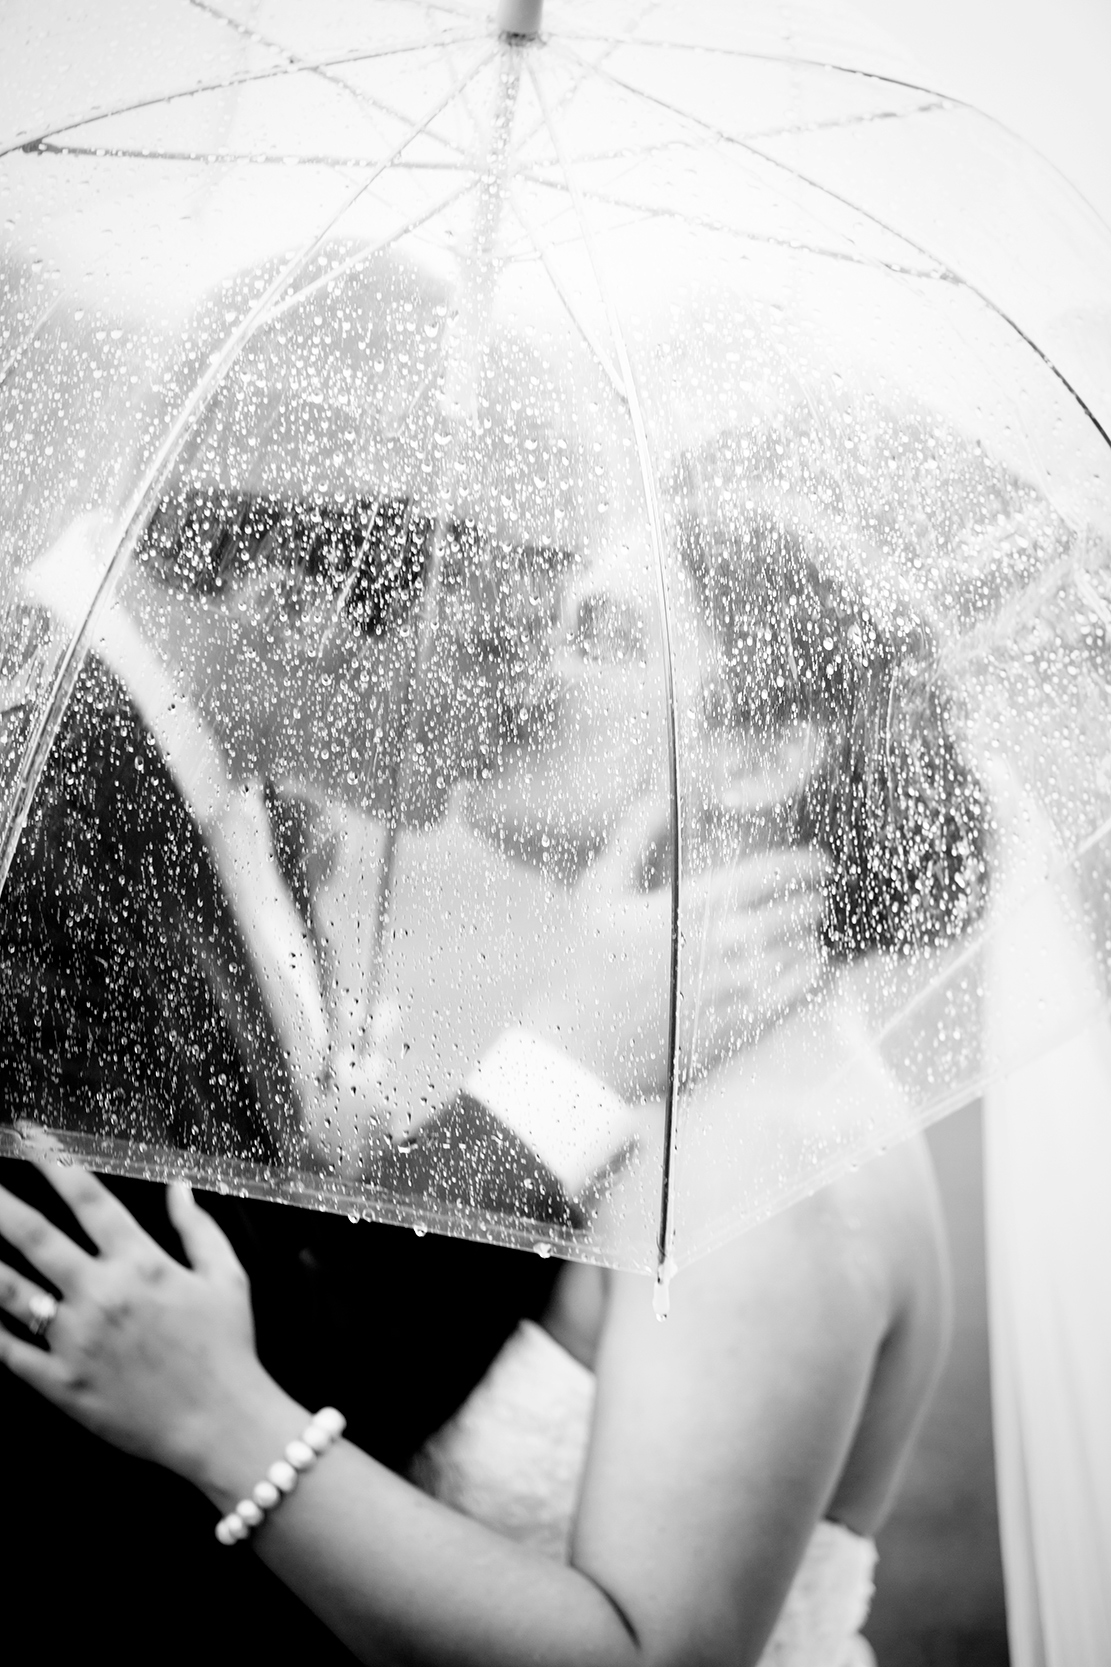 How to Rock a Rainy Wedding day - Image Property of www.j-dphoto.com